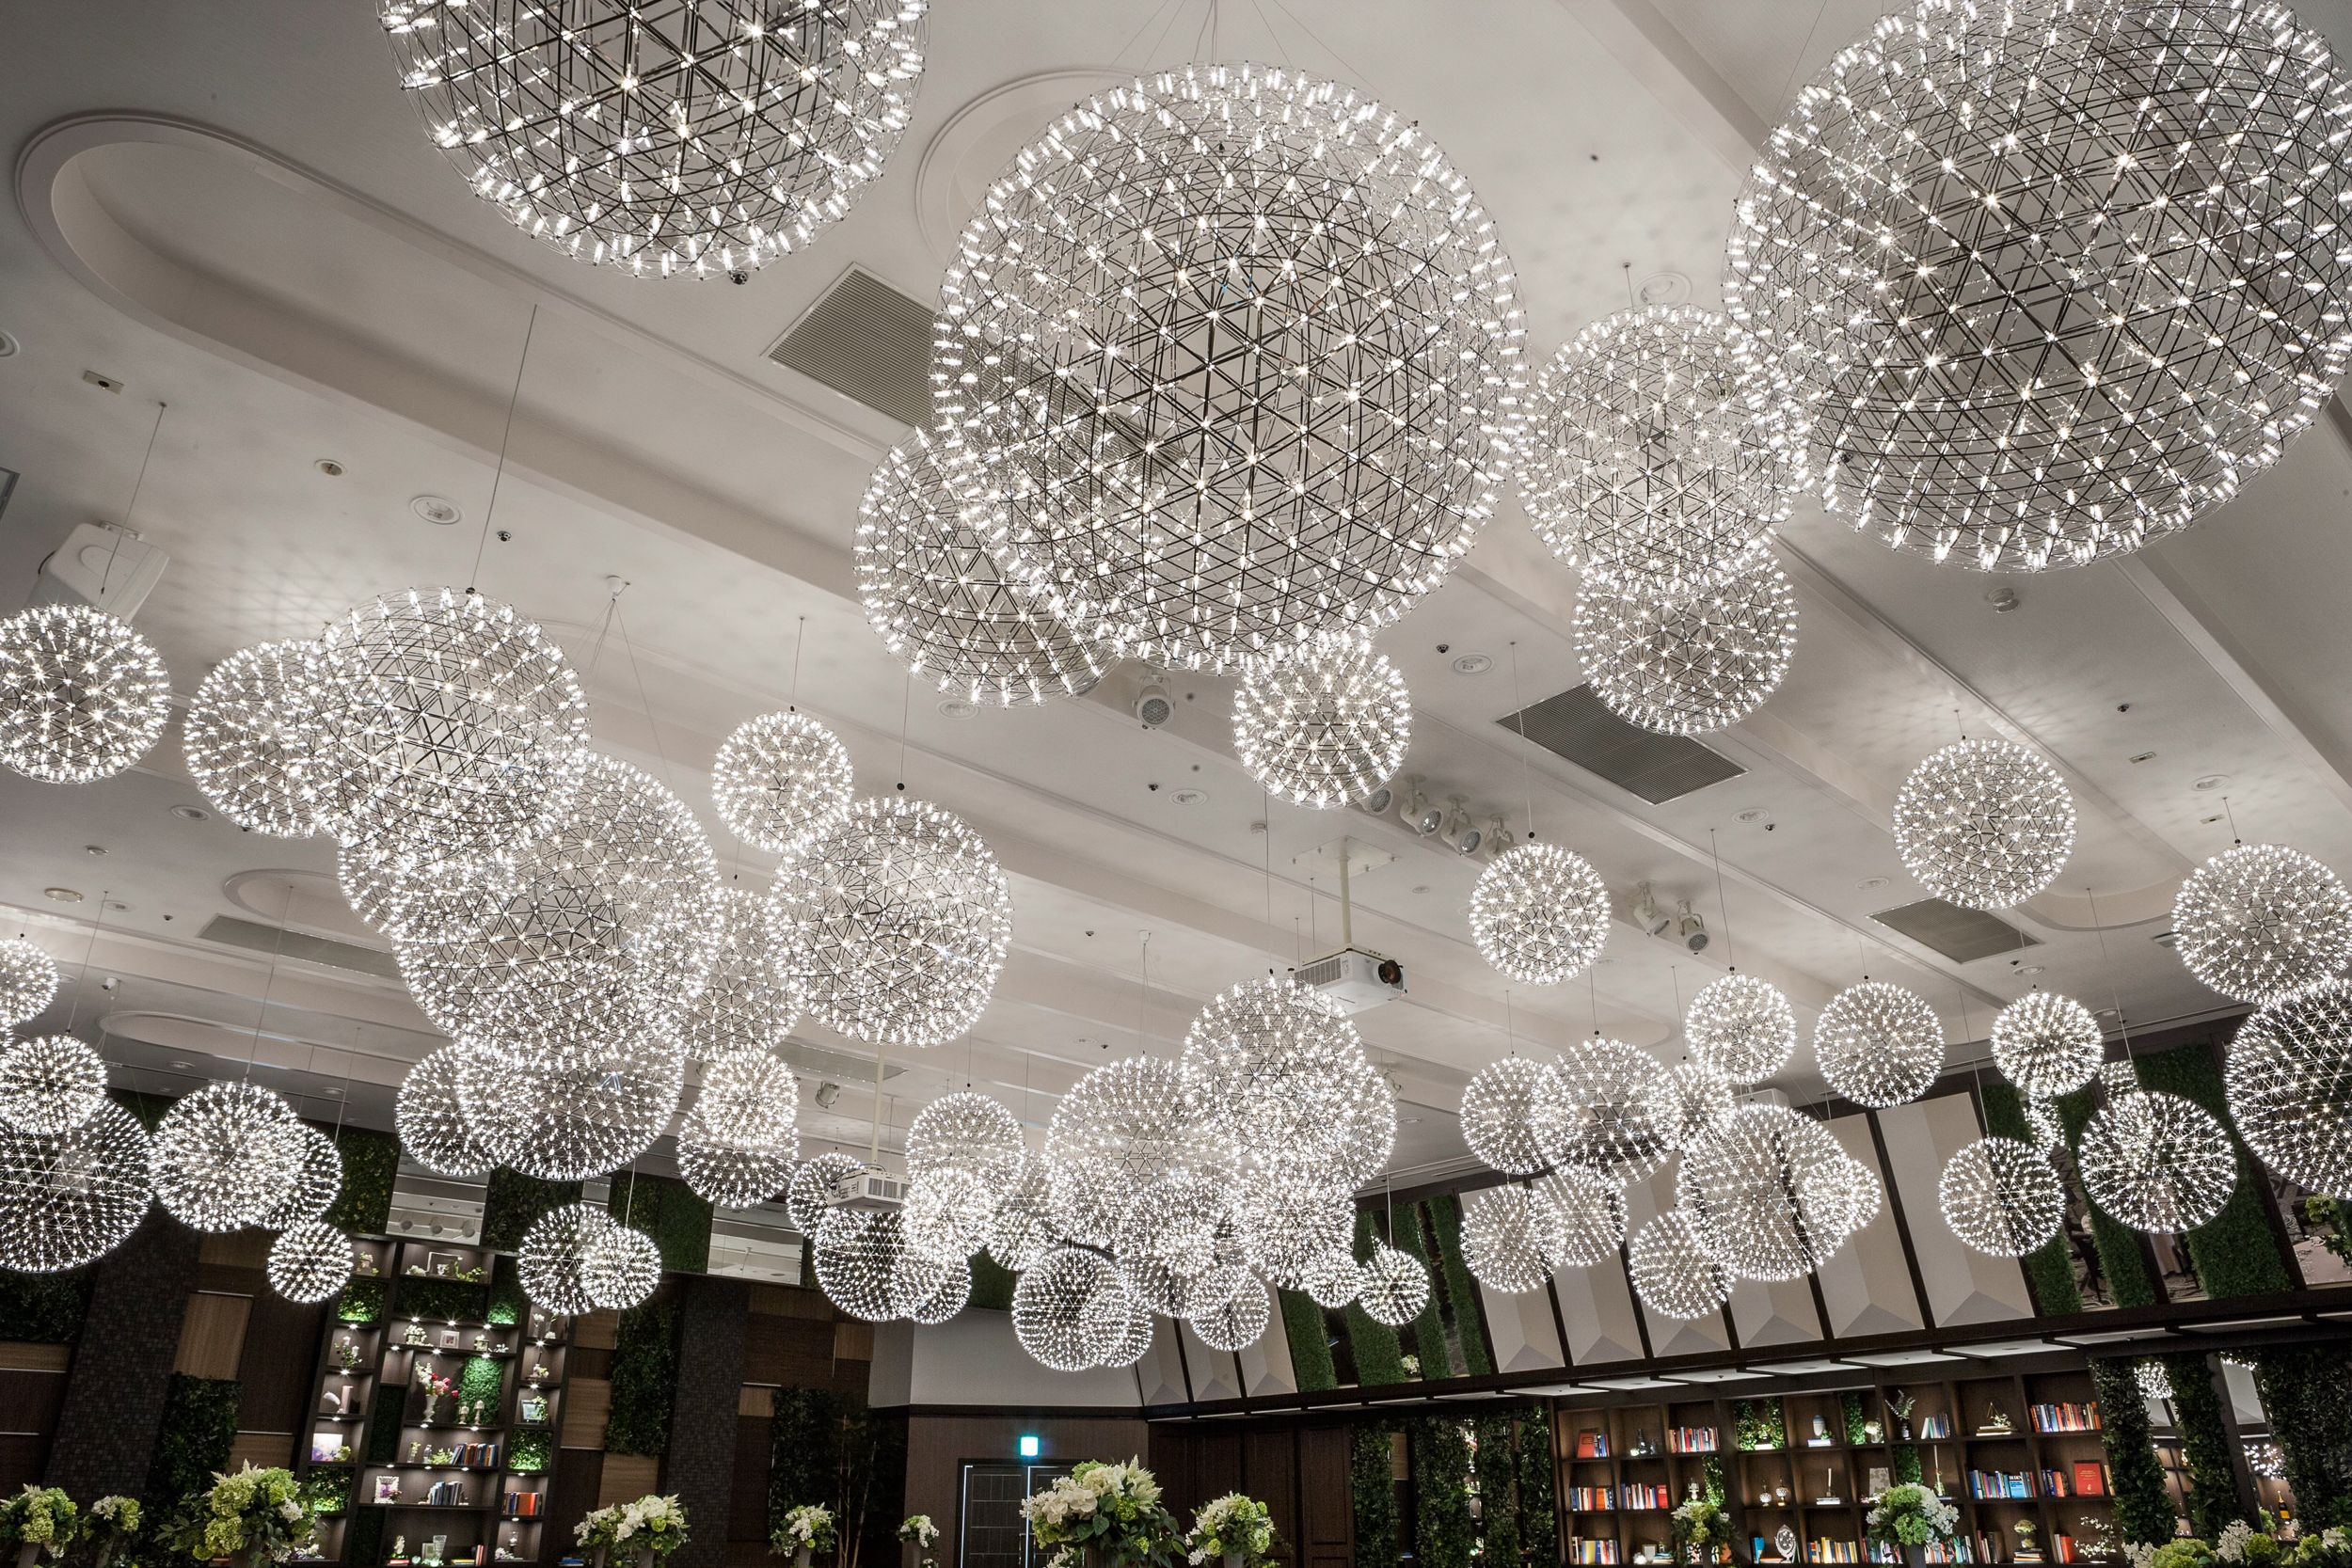 60 Moooi Raimond Ideas Moooi Lights Led Lights